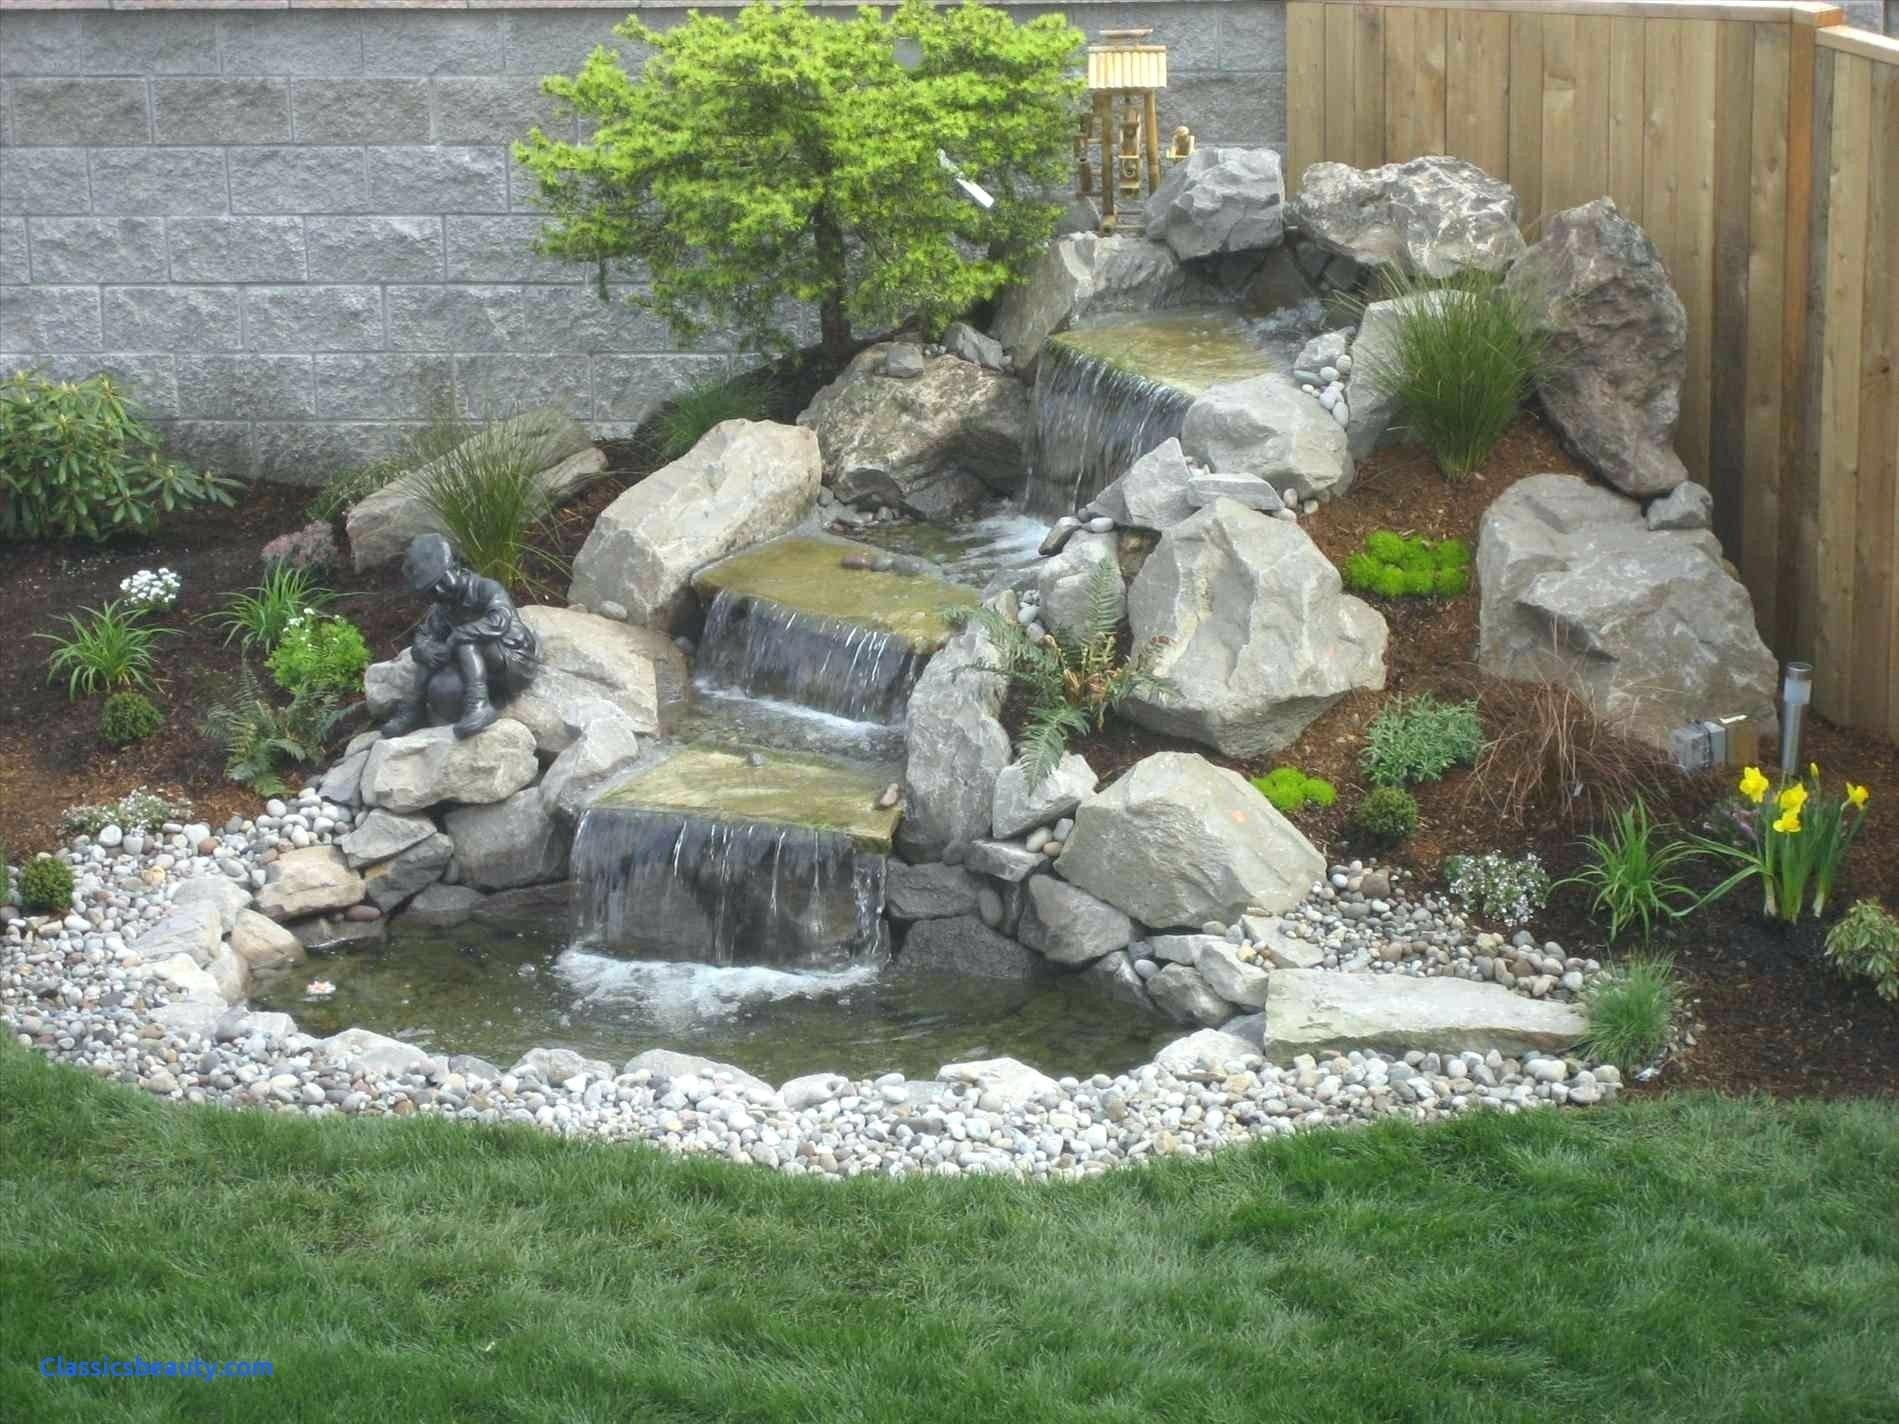 10 Perfect Water Feature Ideas For Small Gardens backyard water features landscape waterfalls outdoor ideas little 2020